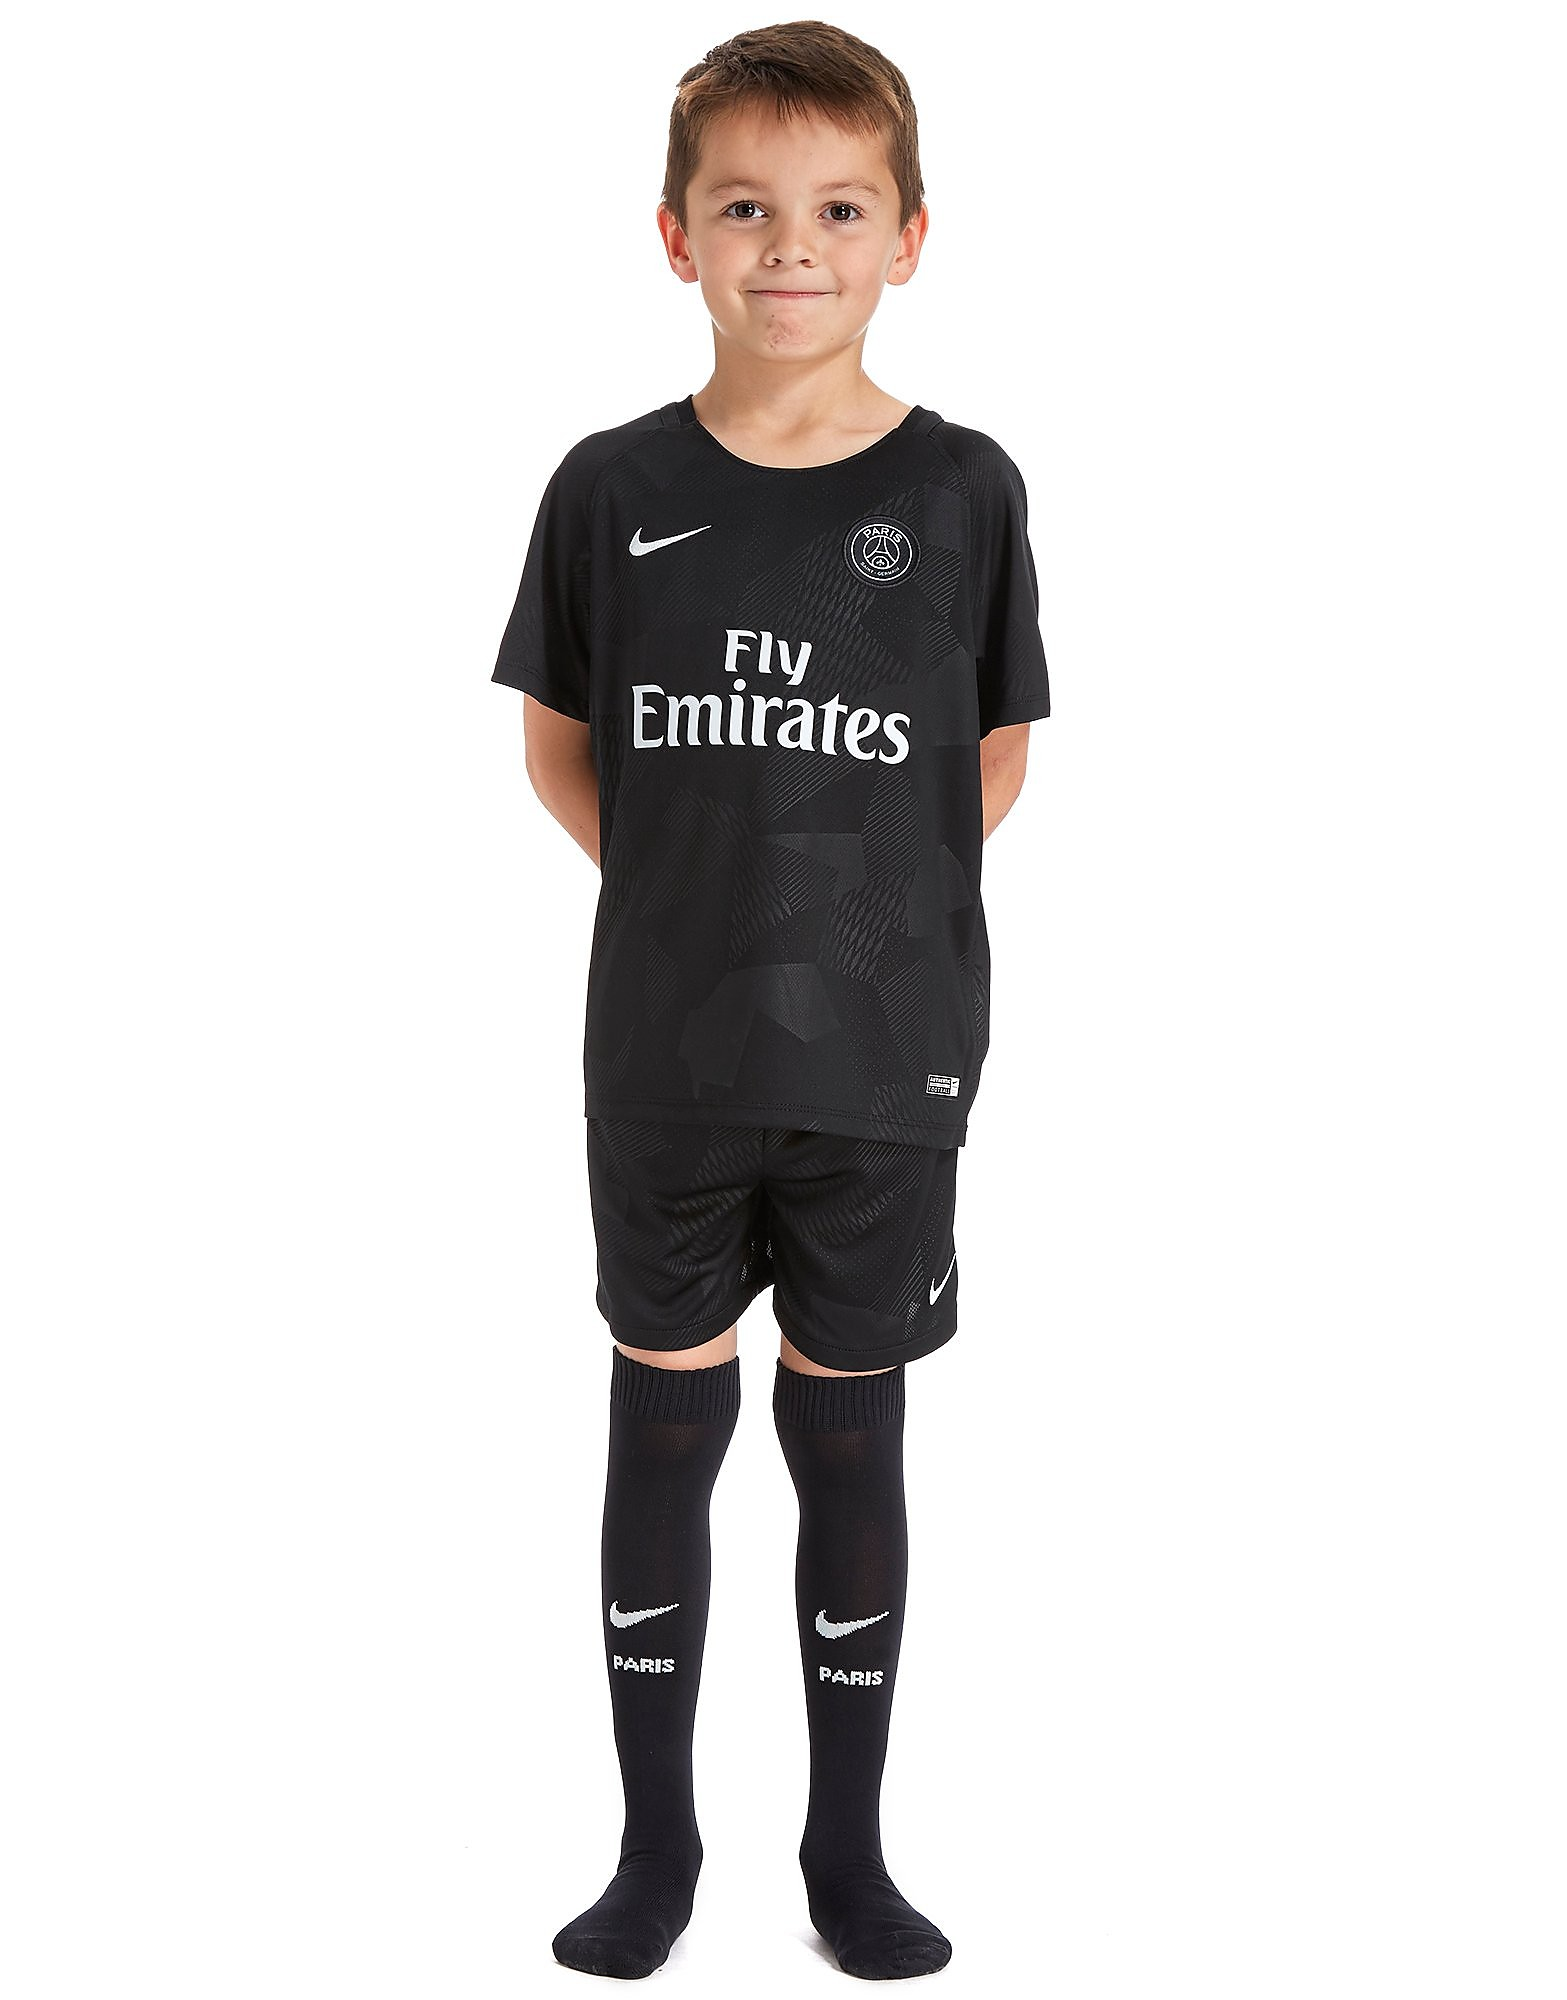 Nike Ensemble Paris Saint Germain 2017/18 Third Kit Enfant